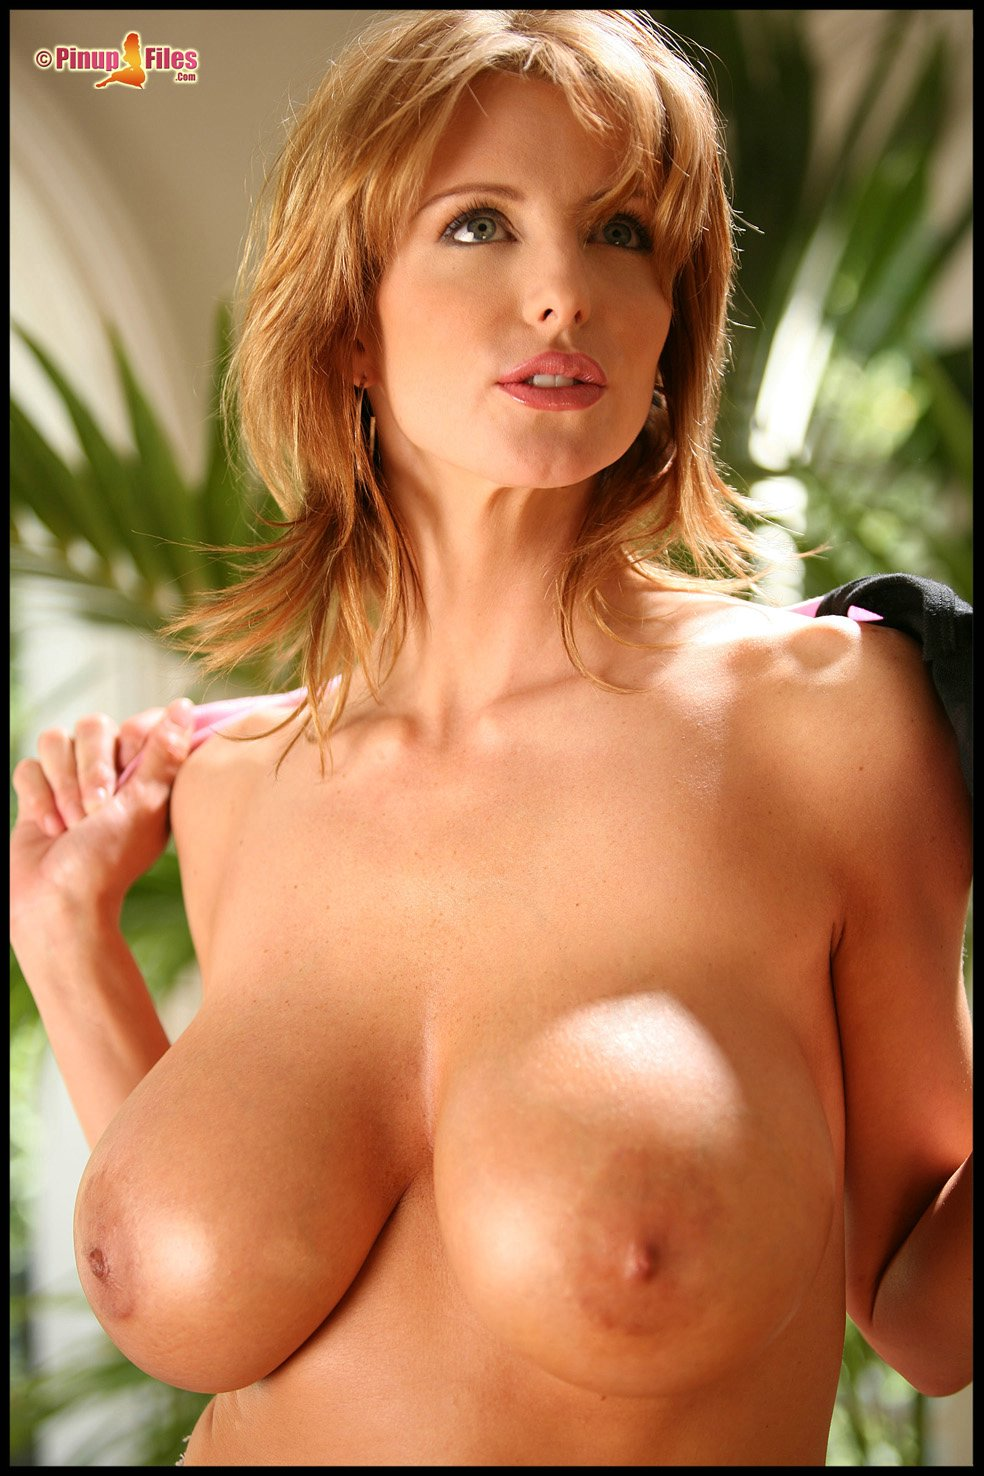 think, that tit fuck for hot busty latin chick improbable. Very well